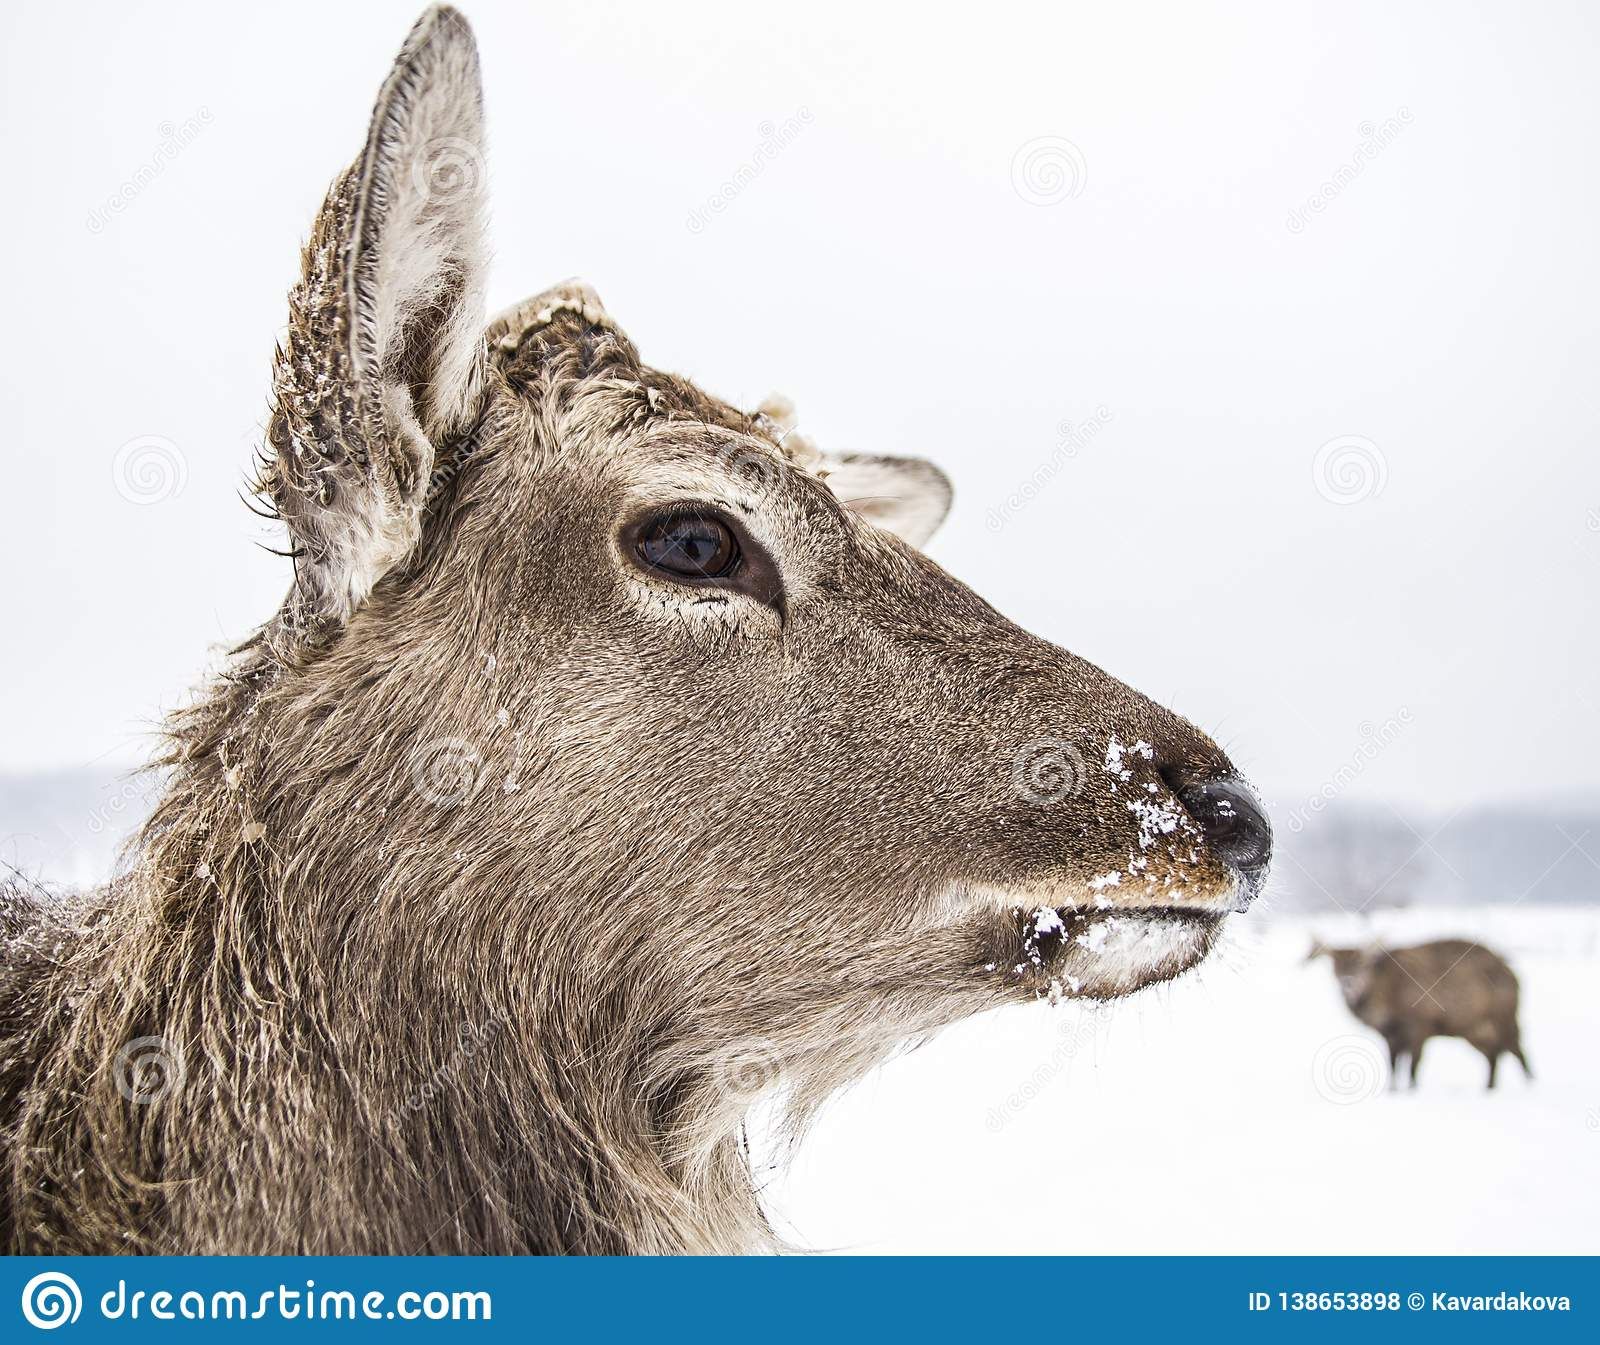 Muzzle animal deer of the winter forest